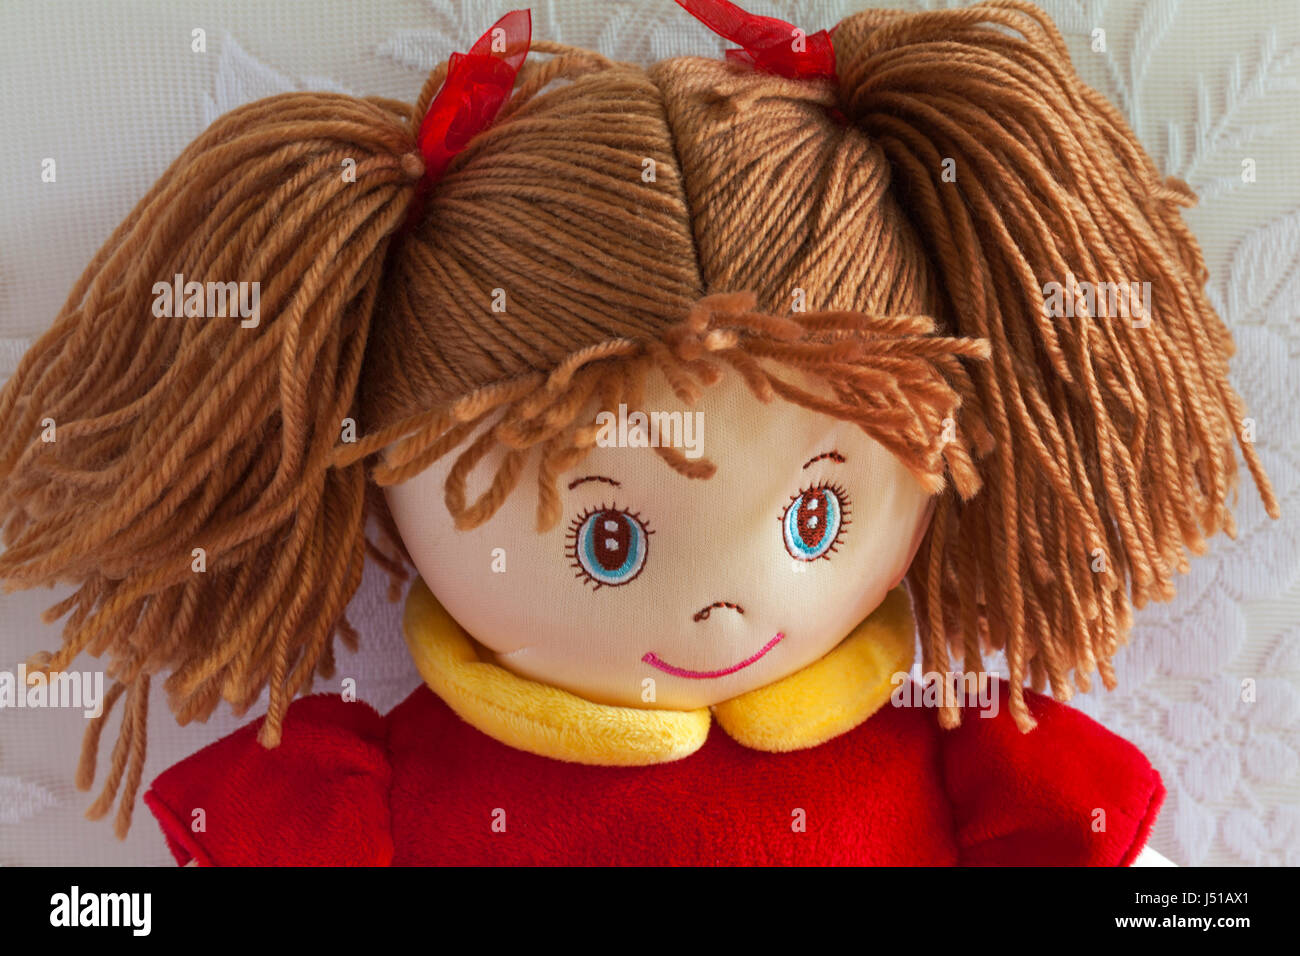 Doll with hair tied in pigtails soft cuddly toy - Stock Image